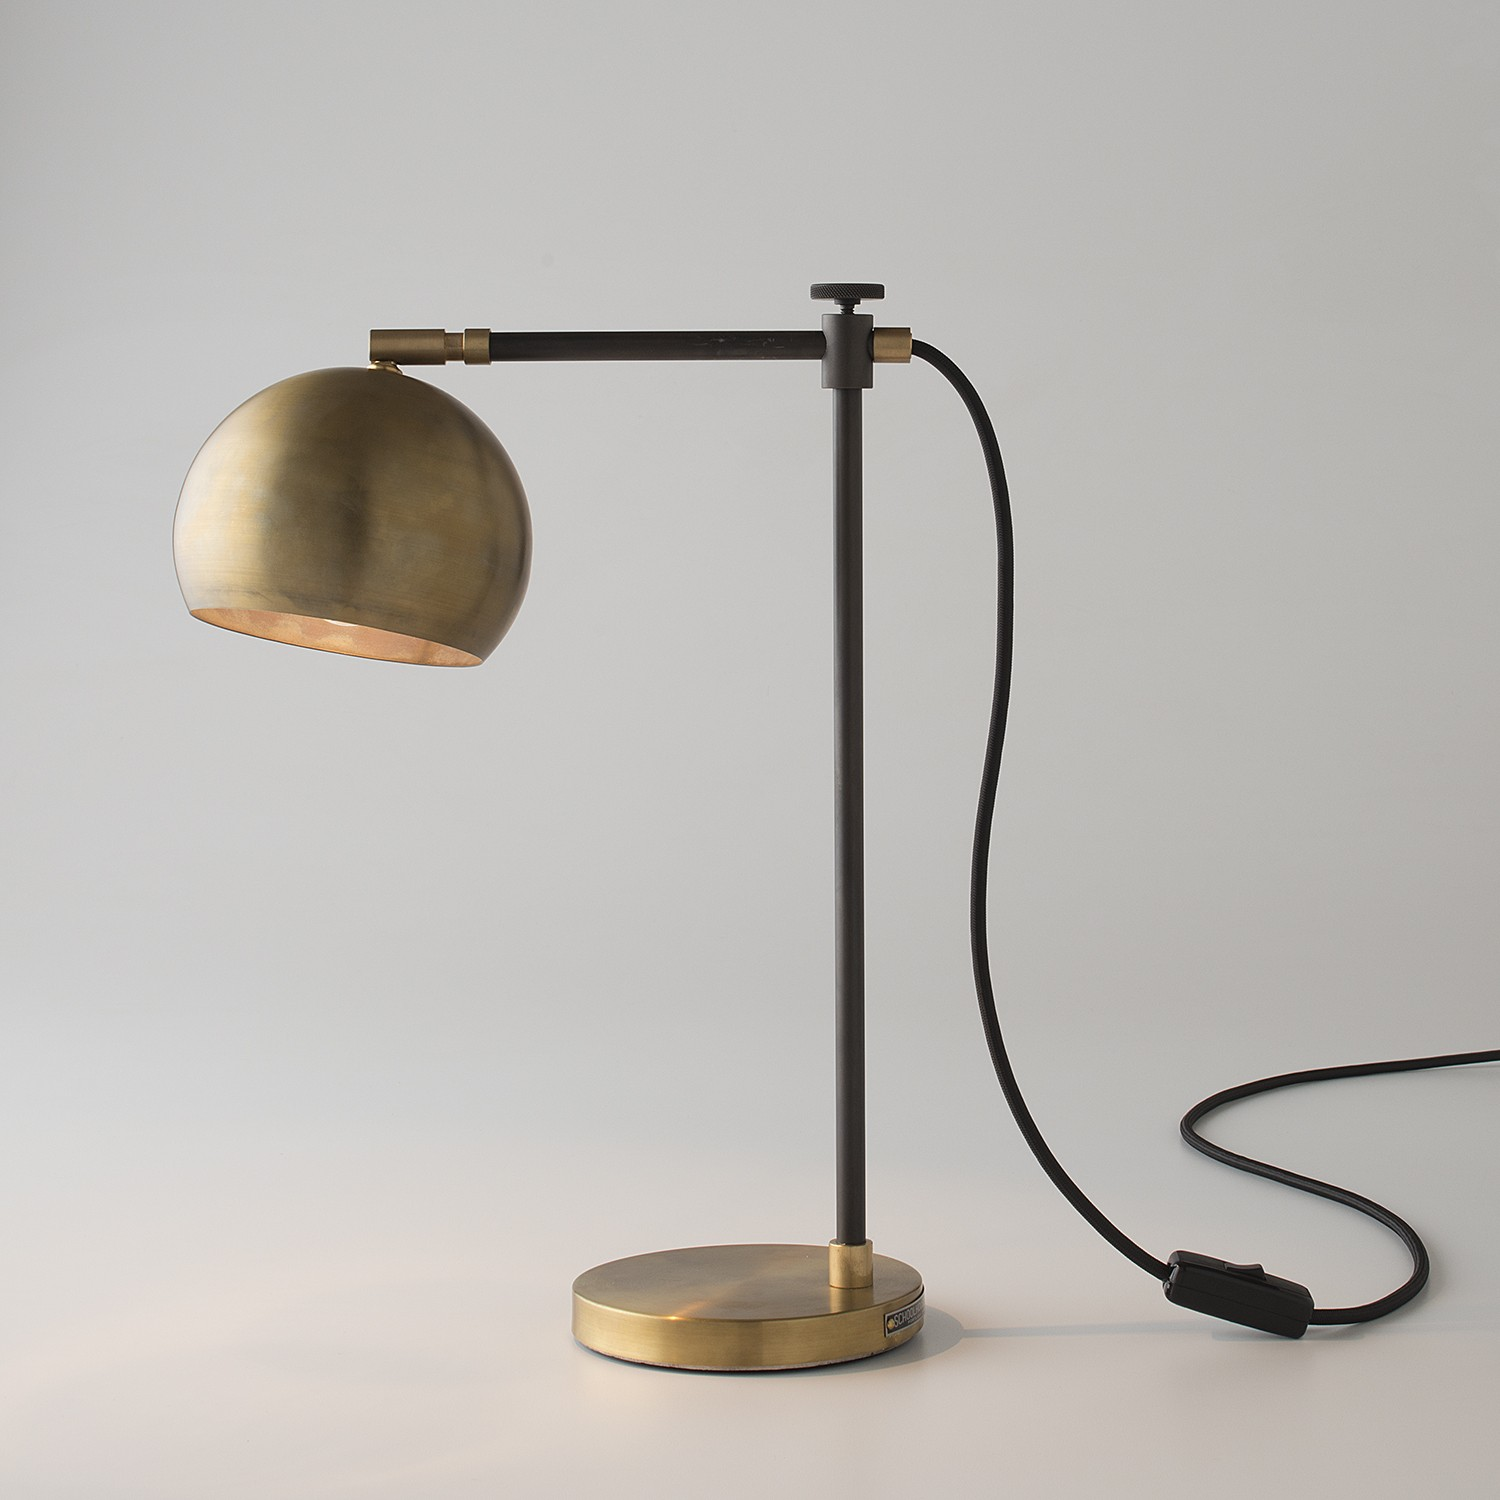 To 10 old desk lamps for bedrooms and studyrooms warisan lighting to 10 old desk lamps for bedrooms and studyrooms mozeypictures Image collections